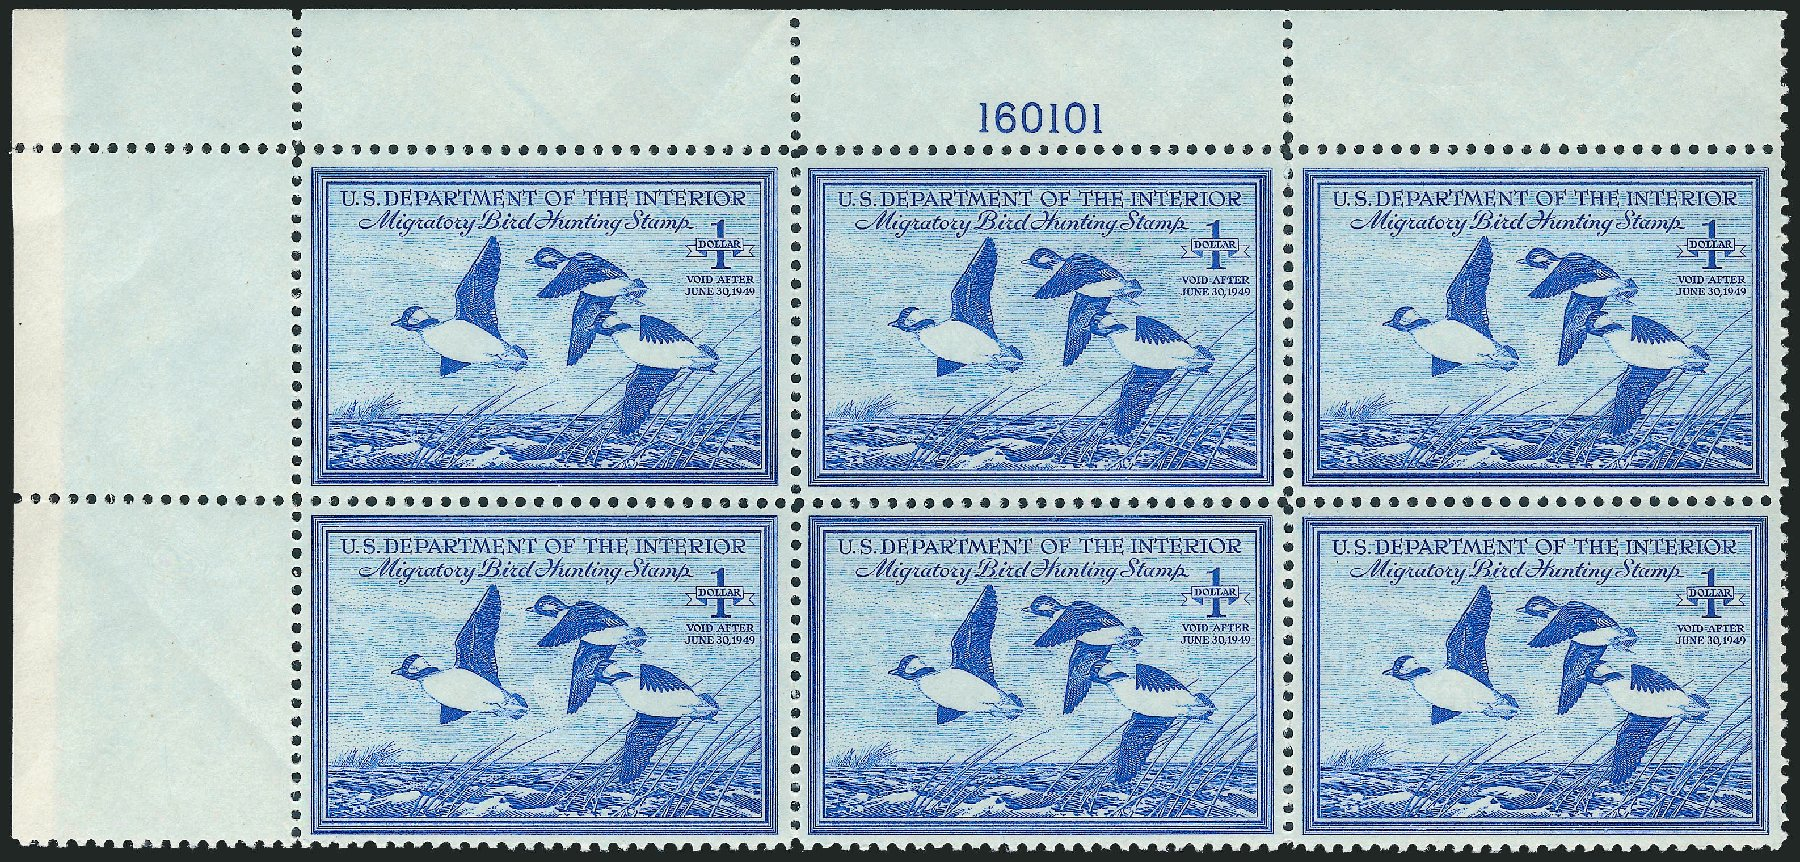 Values of US Stamp Scott Catalog # RW15 - US$1.00 1948 Federal Duck Hunting. Robert Siegel Auction Galleries, Mar 2011, Sale 1007, Lot 3177